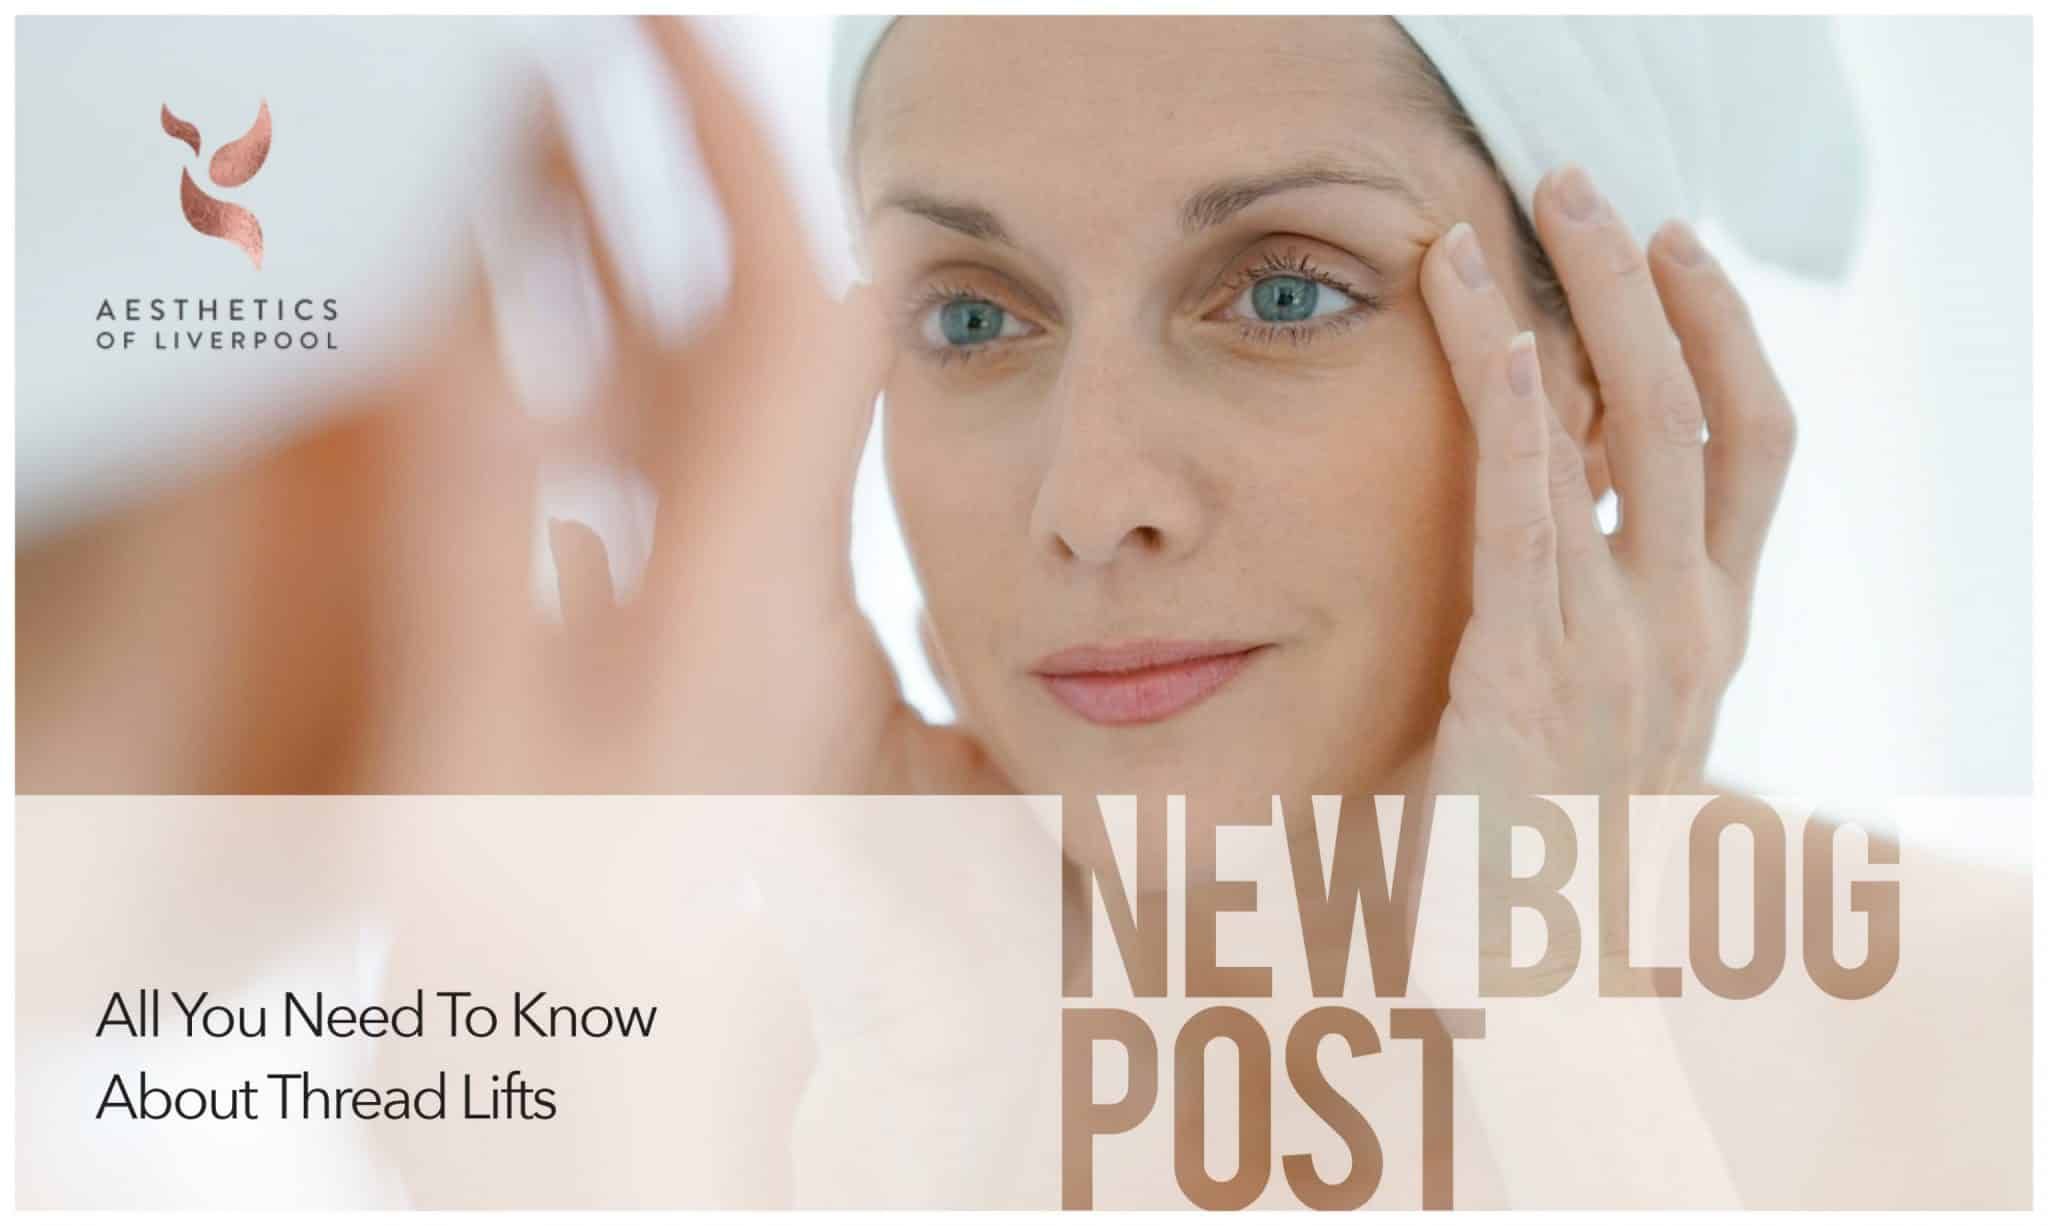 All You Need To Know About Thread Lifts